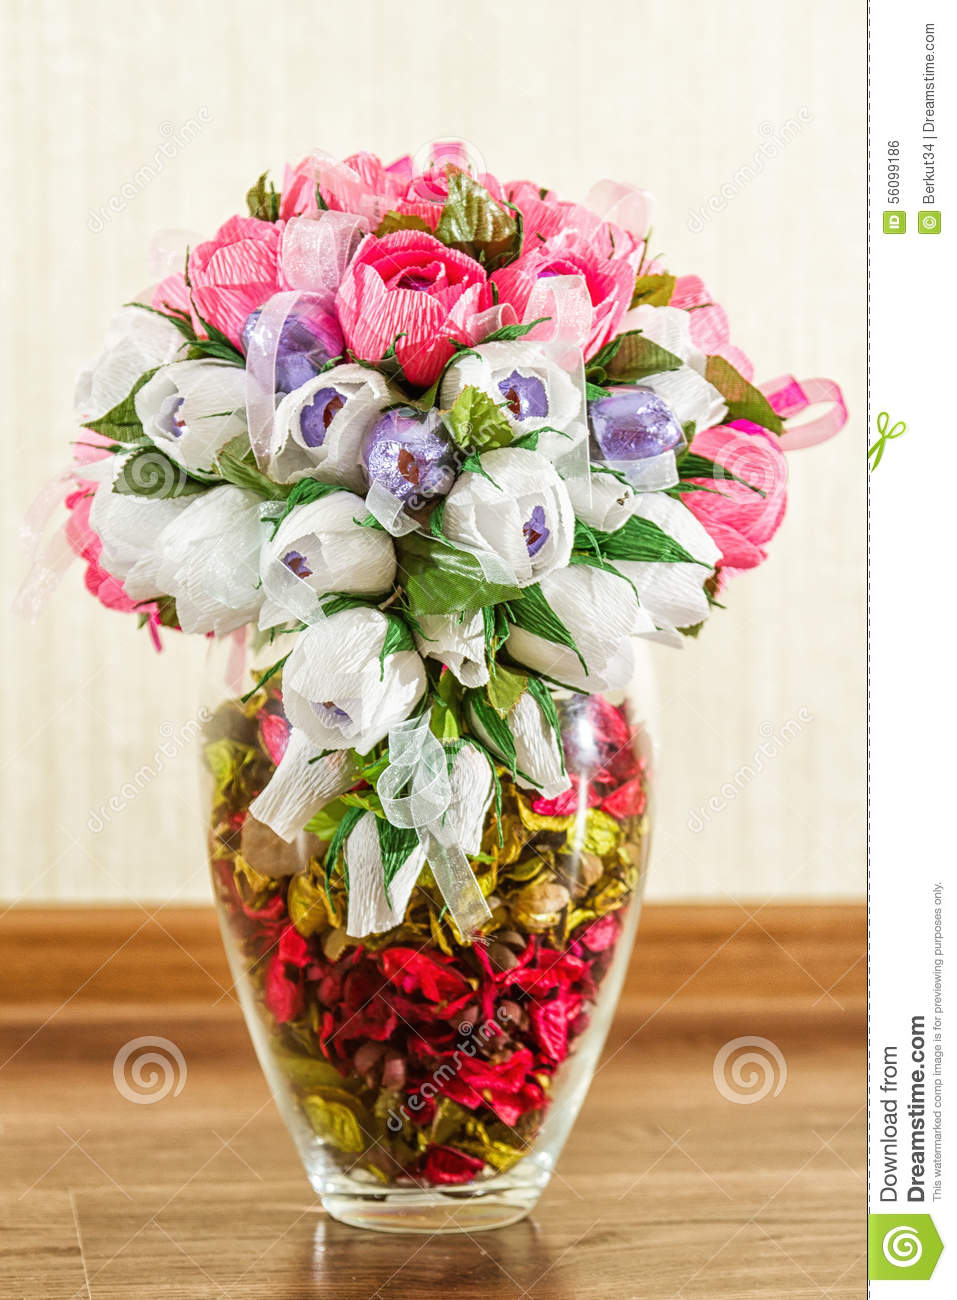 Beautiful candy bouquet stock photo image of lollipop 56099186 download beautiful candy bouquet stock photo image of lollipop 56099186 izmirmasajfo